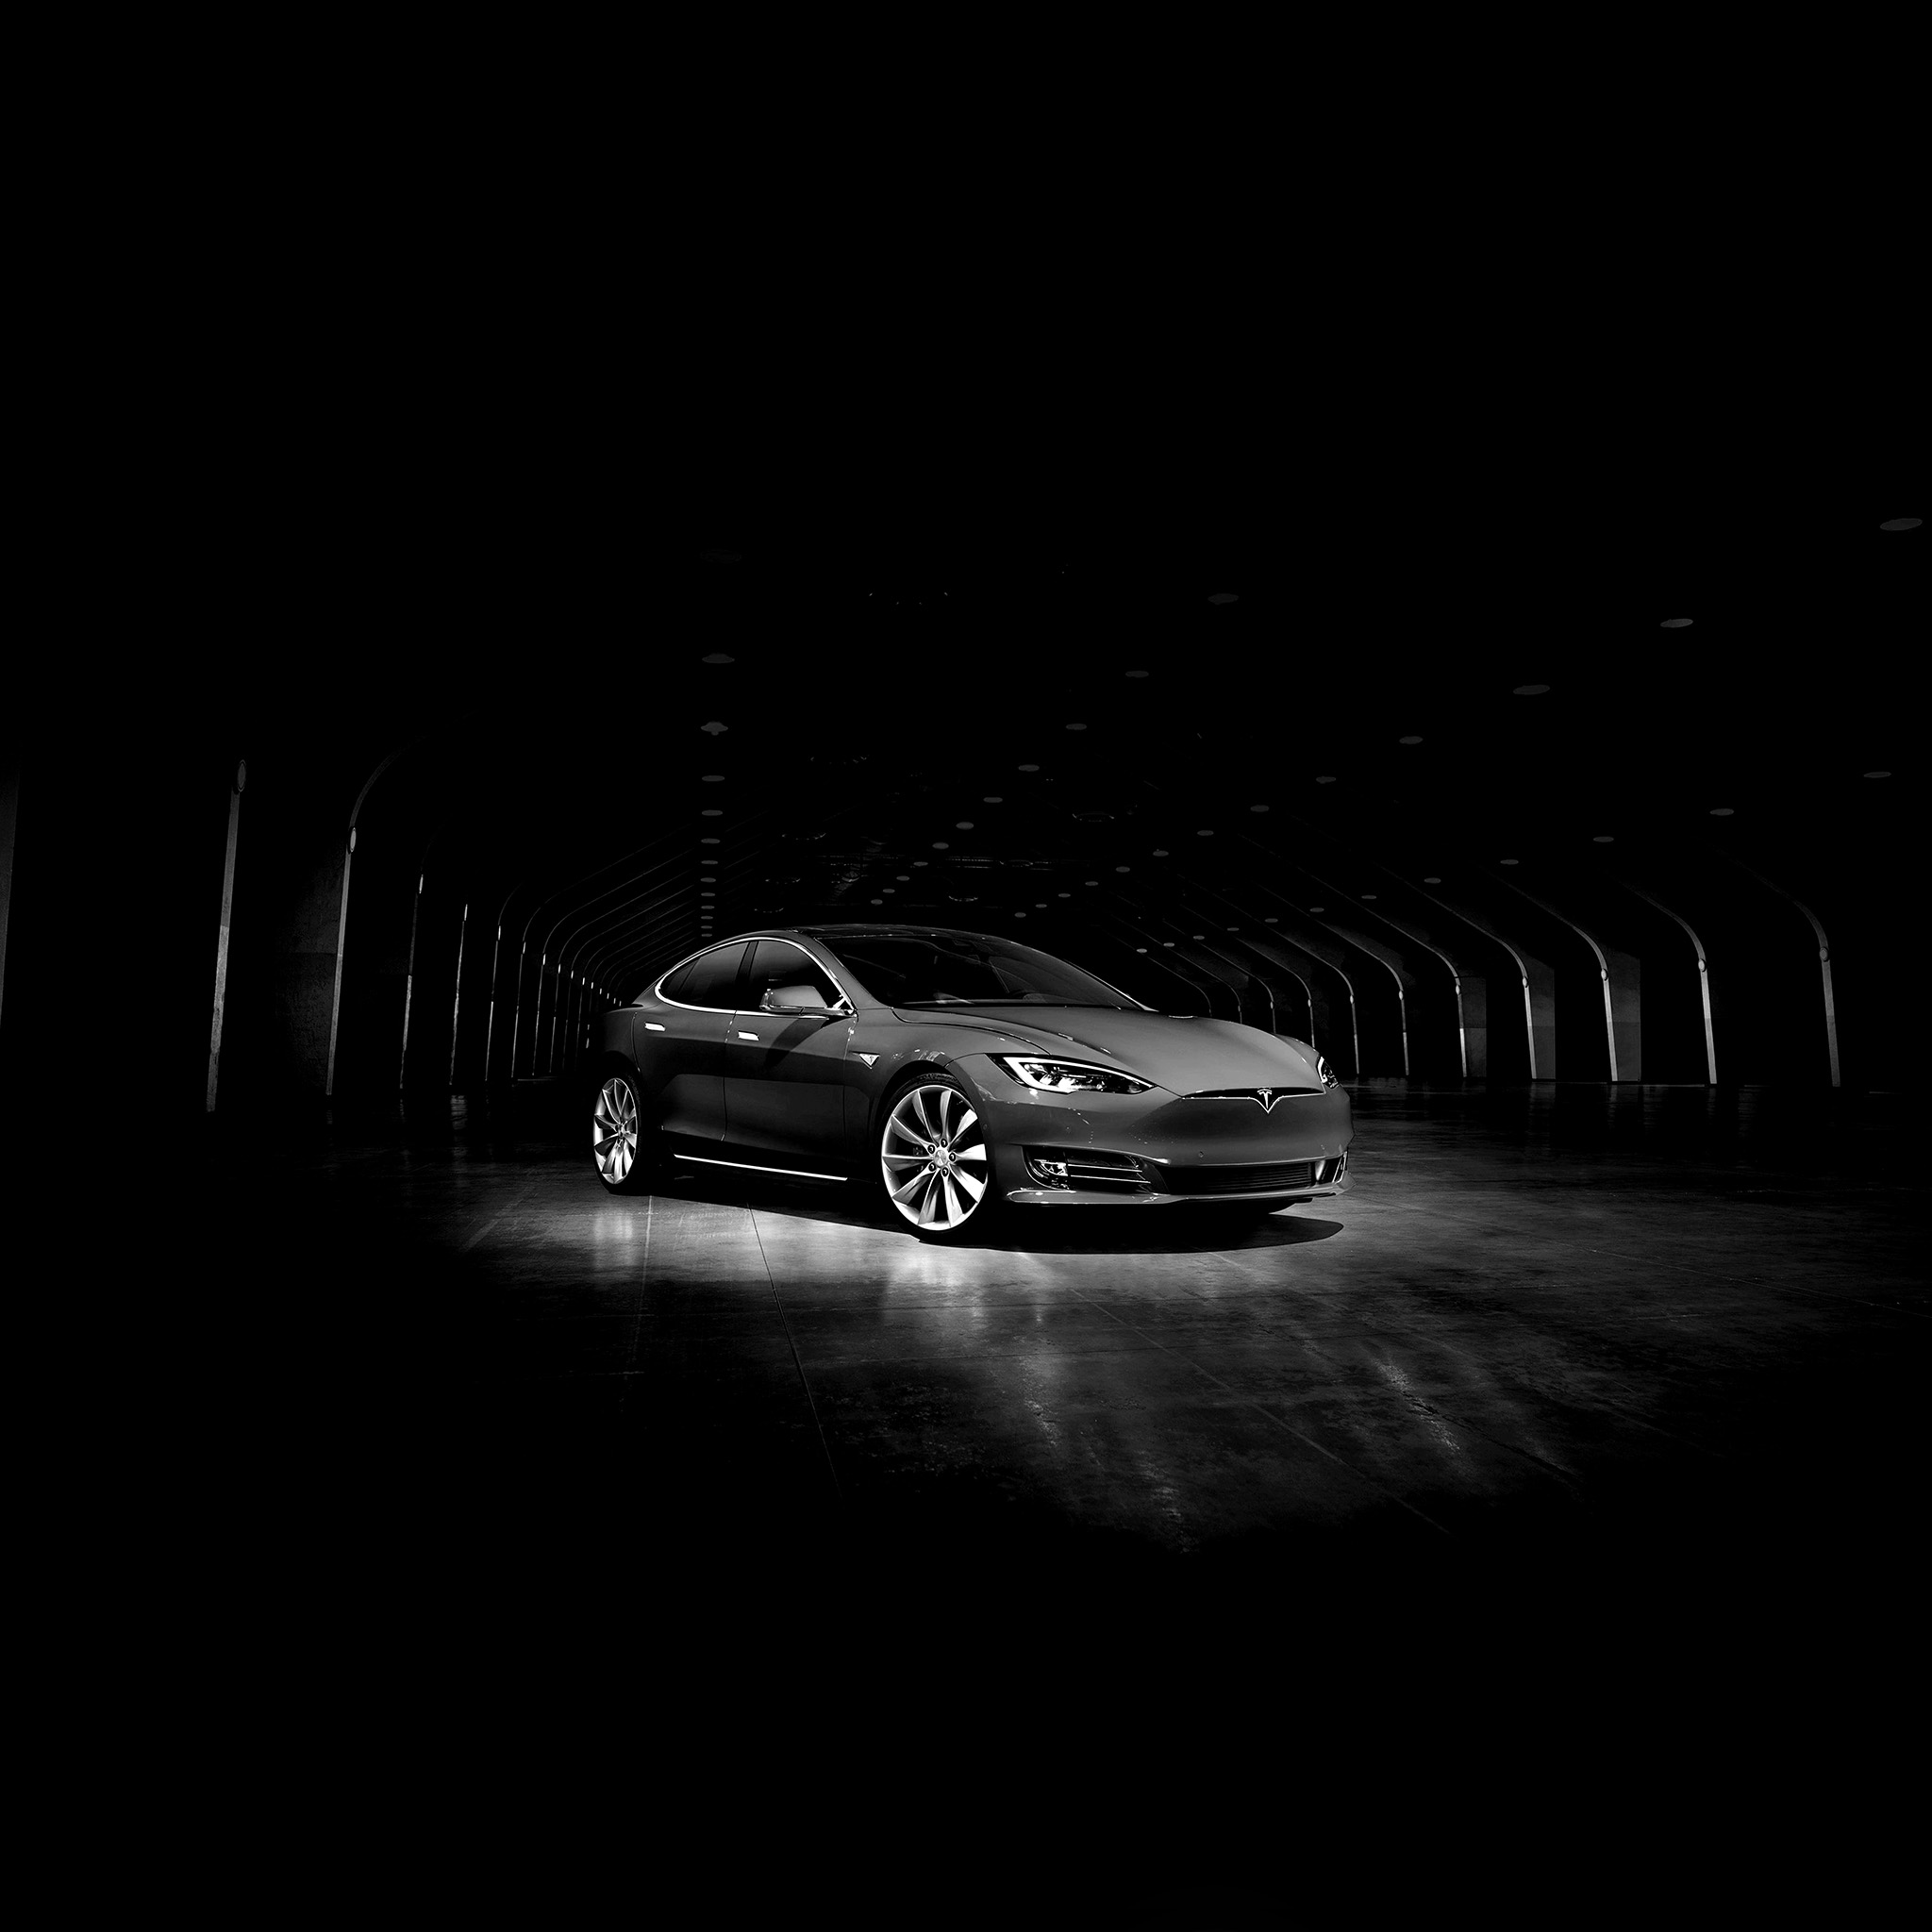 Wallpaper Tesla Model S Novitec Hd 4k Automotive: Aq54-tesla-model-dark-bw-car-wallpaper